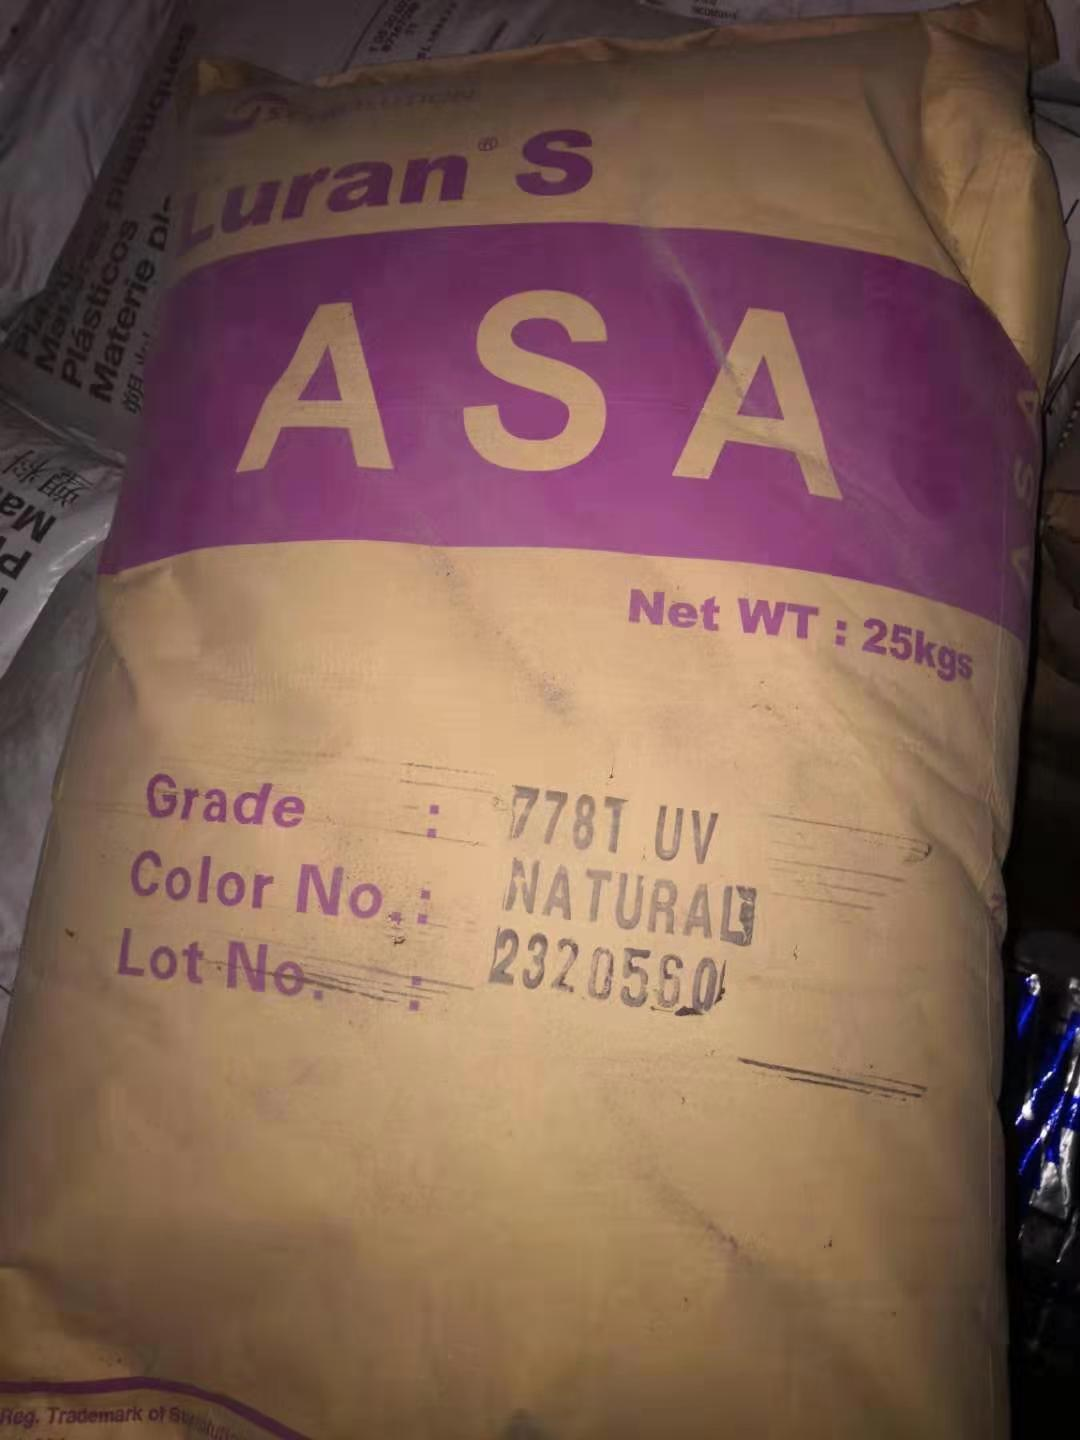 ASA LURAN S778T UV NATURAL 2320560